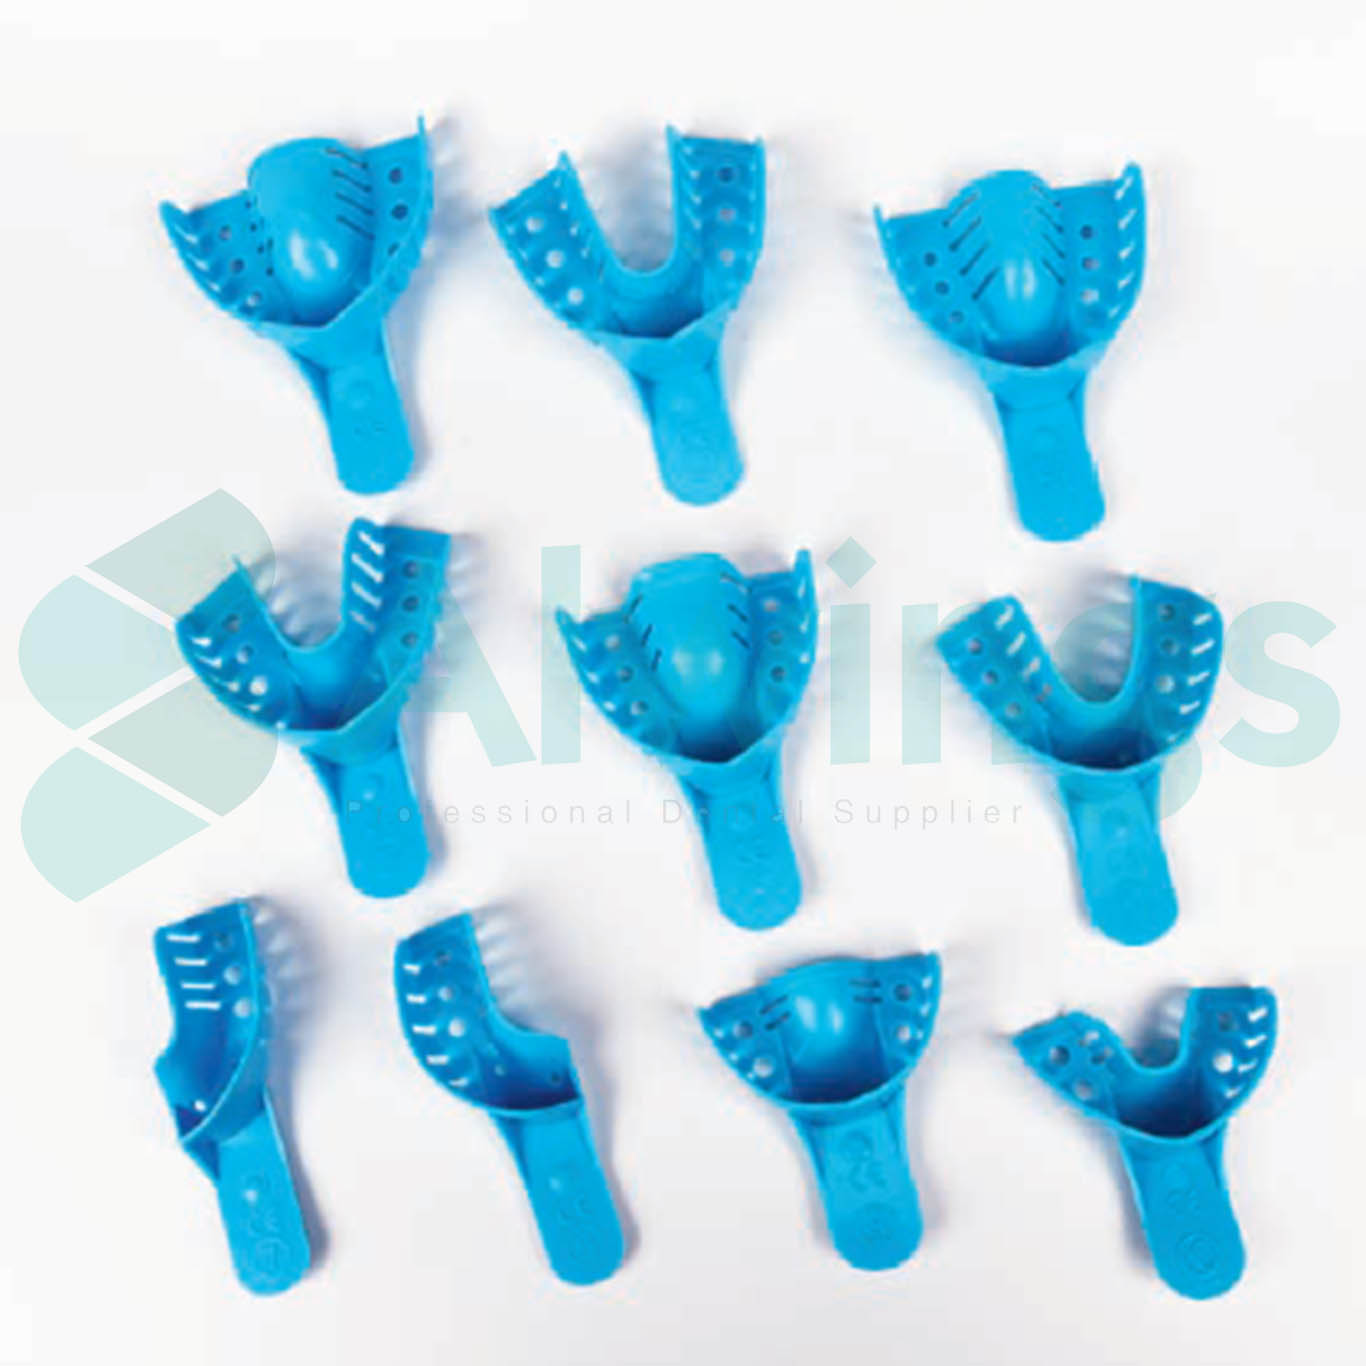 Alwings Dental Disposable Impression Trays